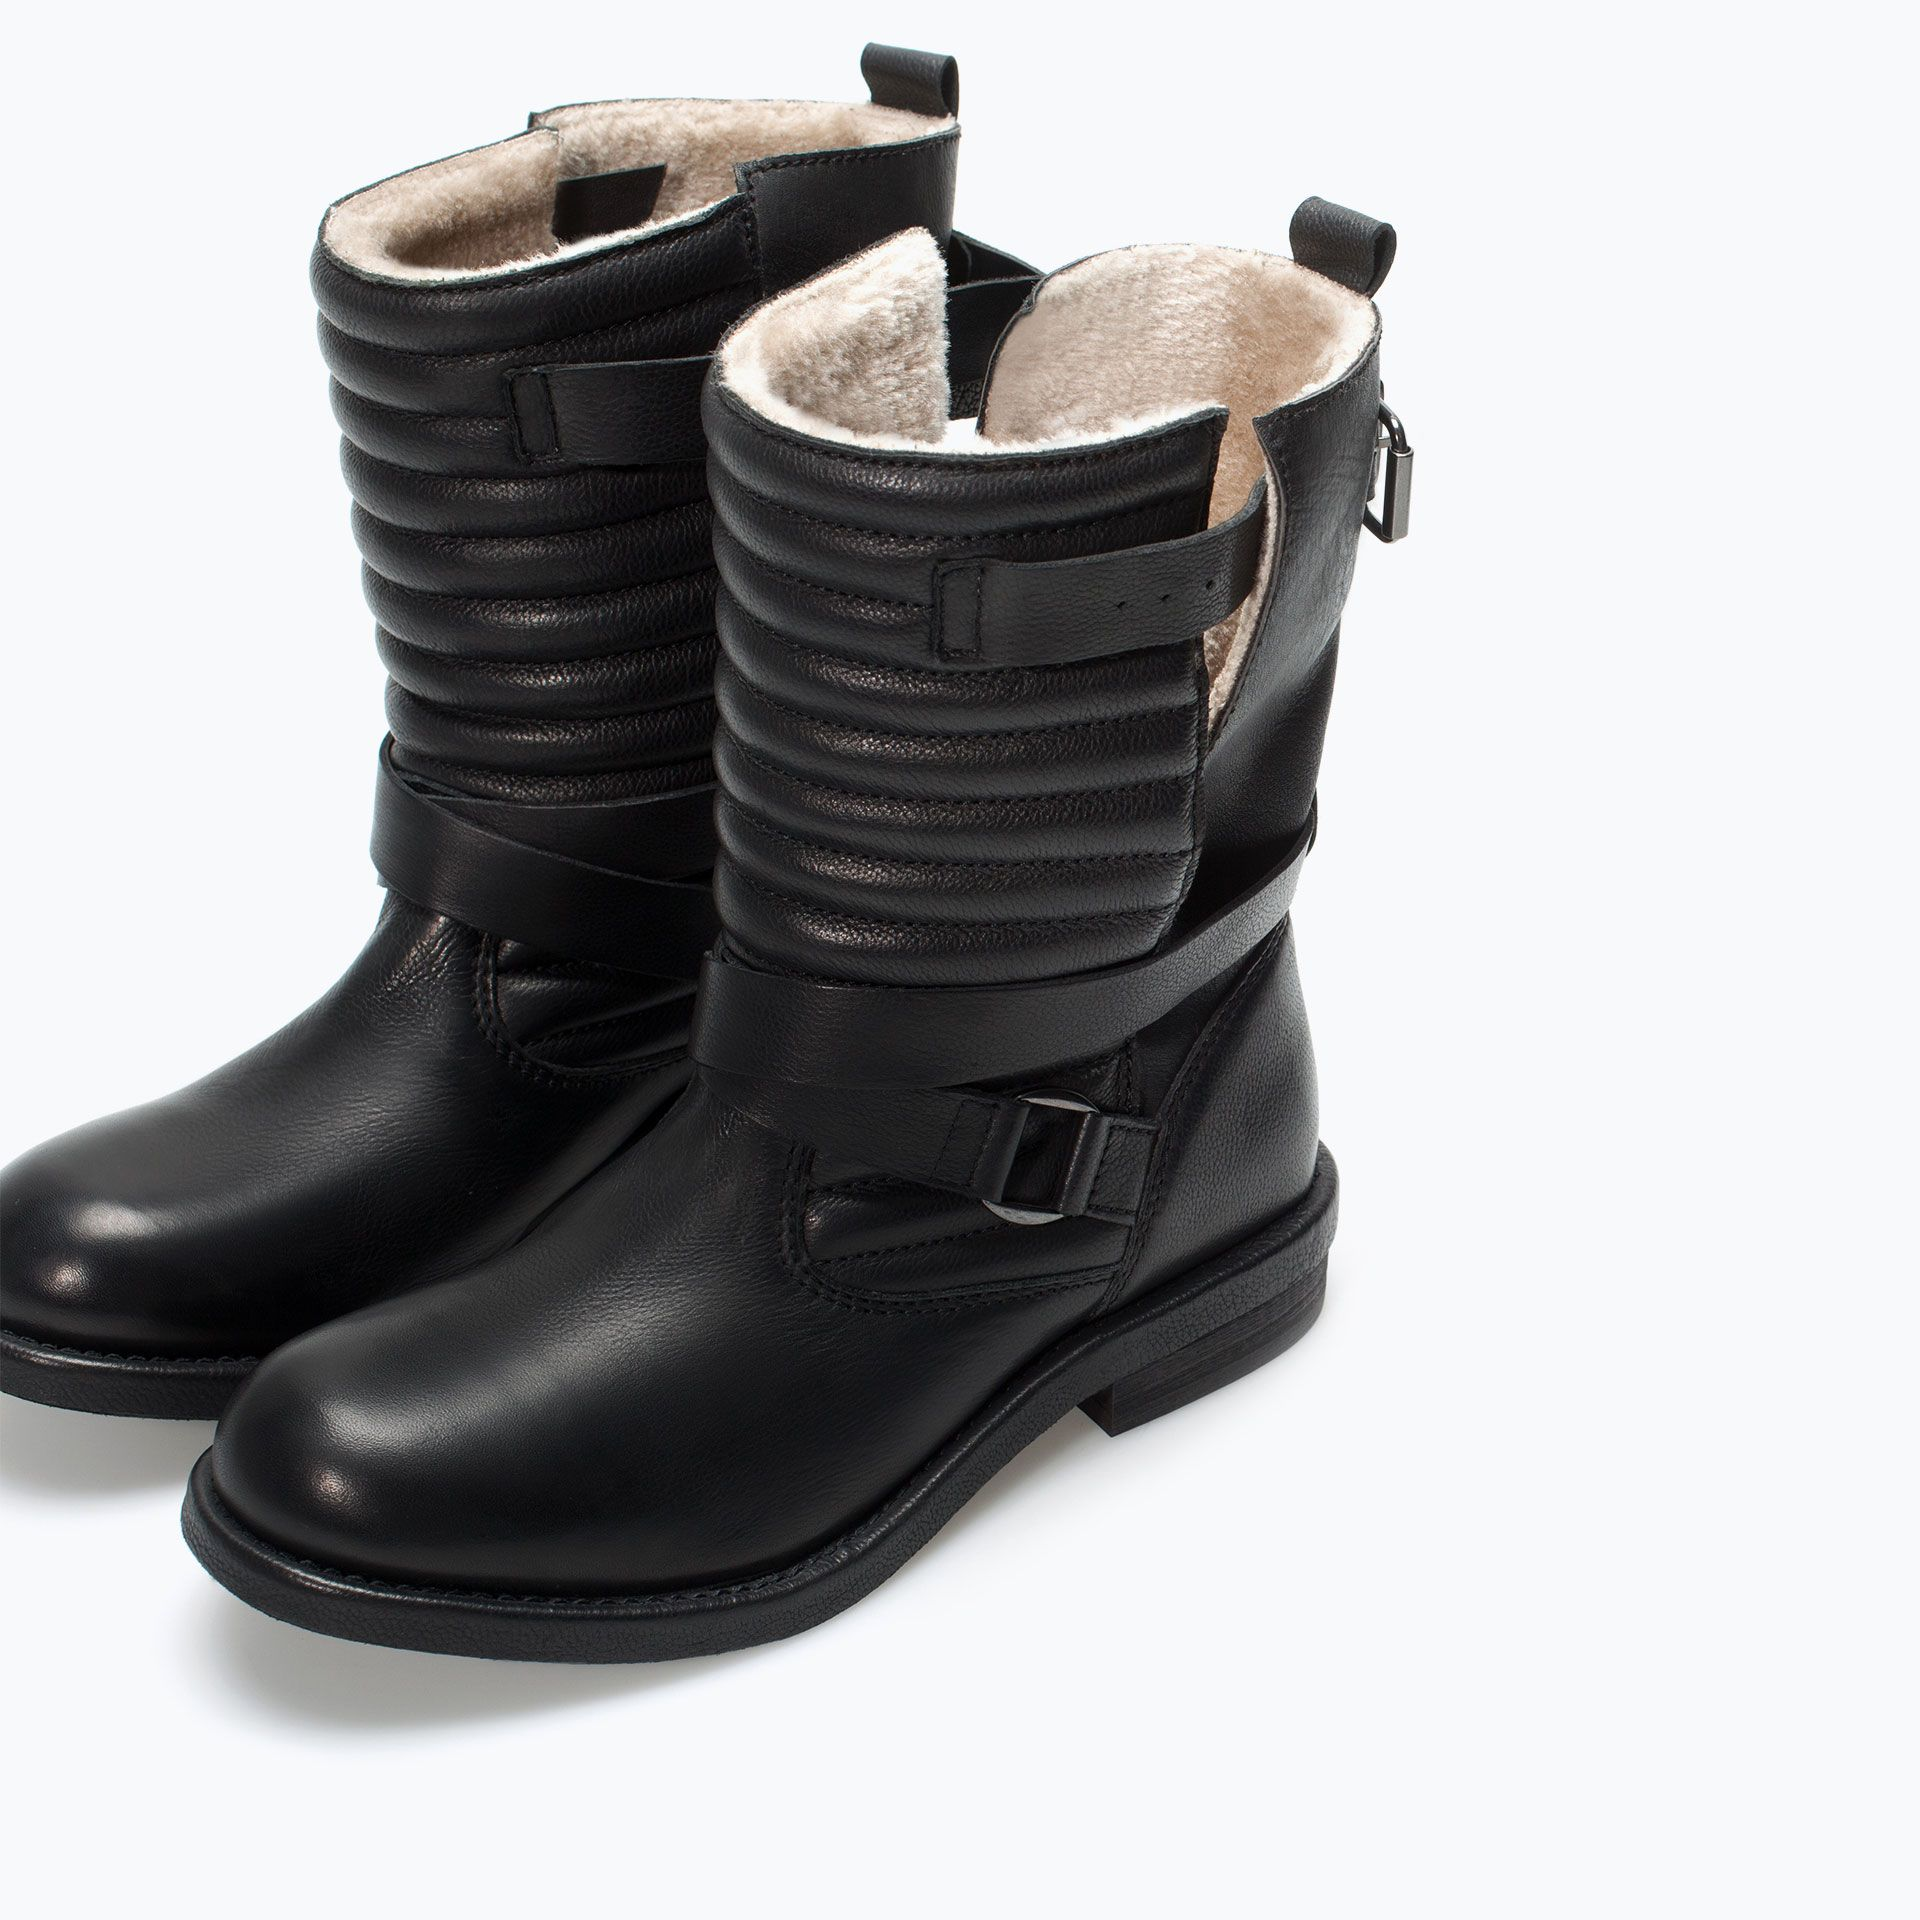 Image 4 of QUILTED LEATHER BIKER BOOT from Zara | Shoes ... : quilted biker boots - Adamdwight.com